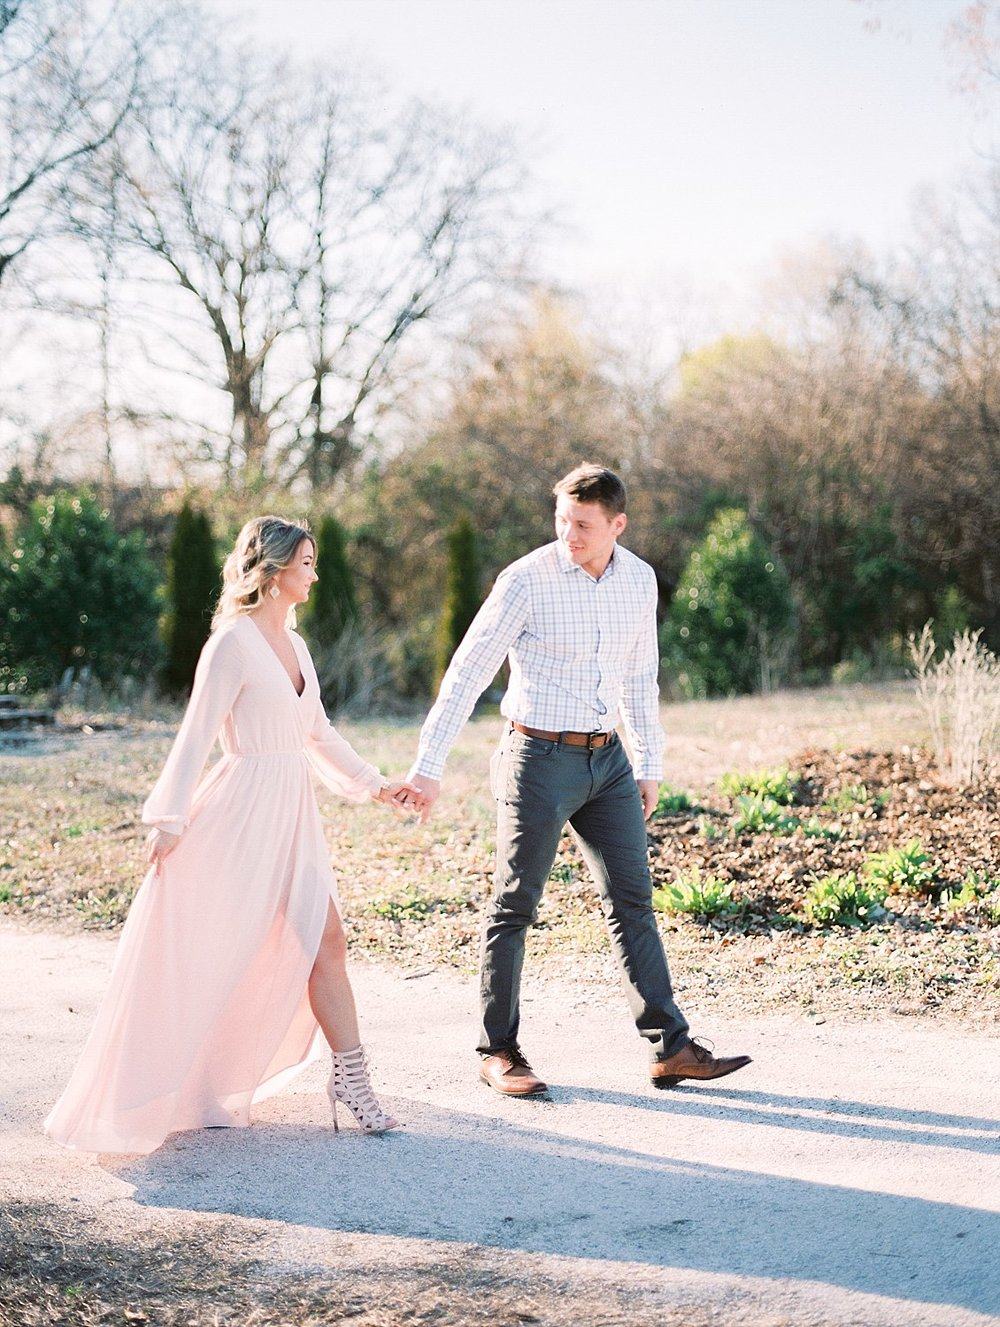 Knoxville Botanical Garden Engagement | Knoxville Wedding Photographer | Juicebeats Photography | Knoxville Engagement